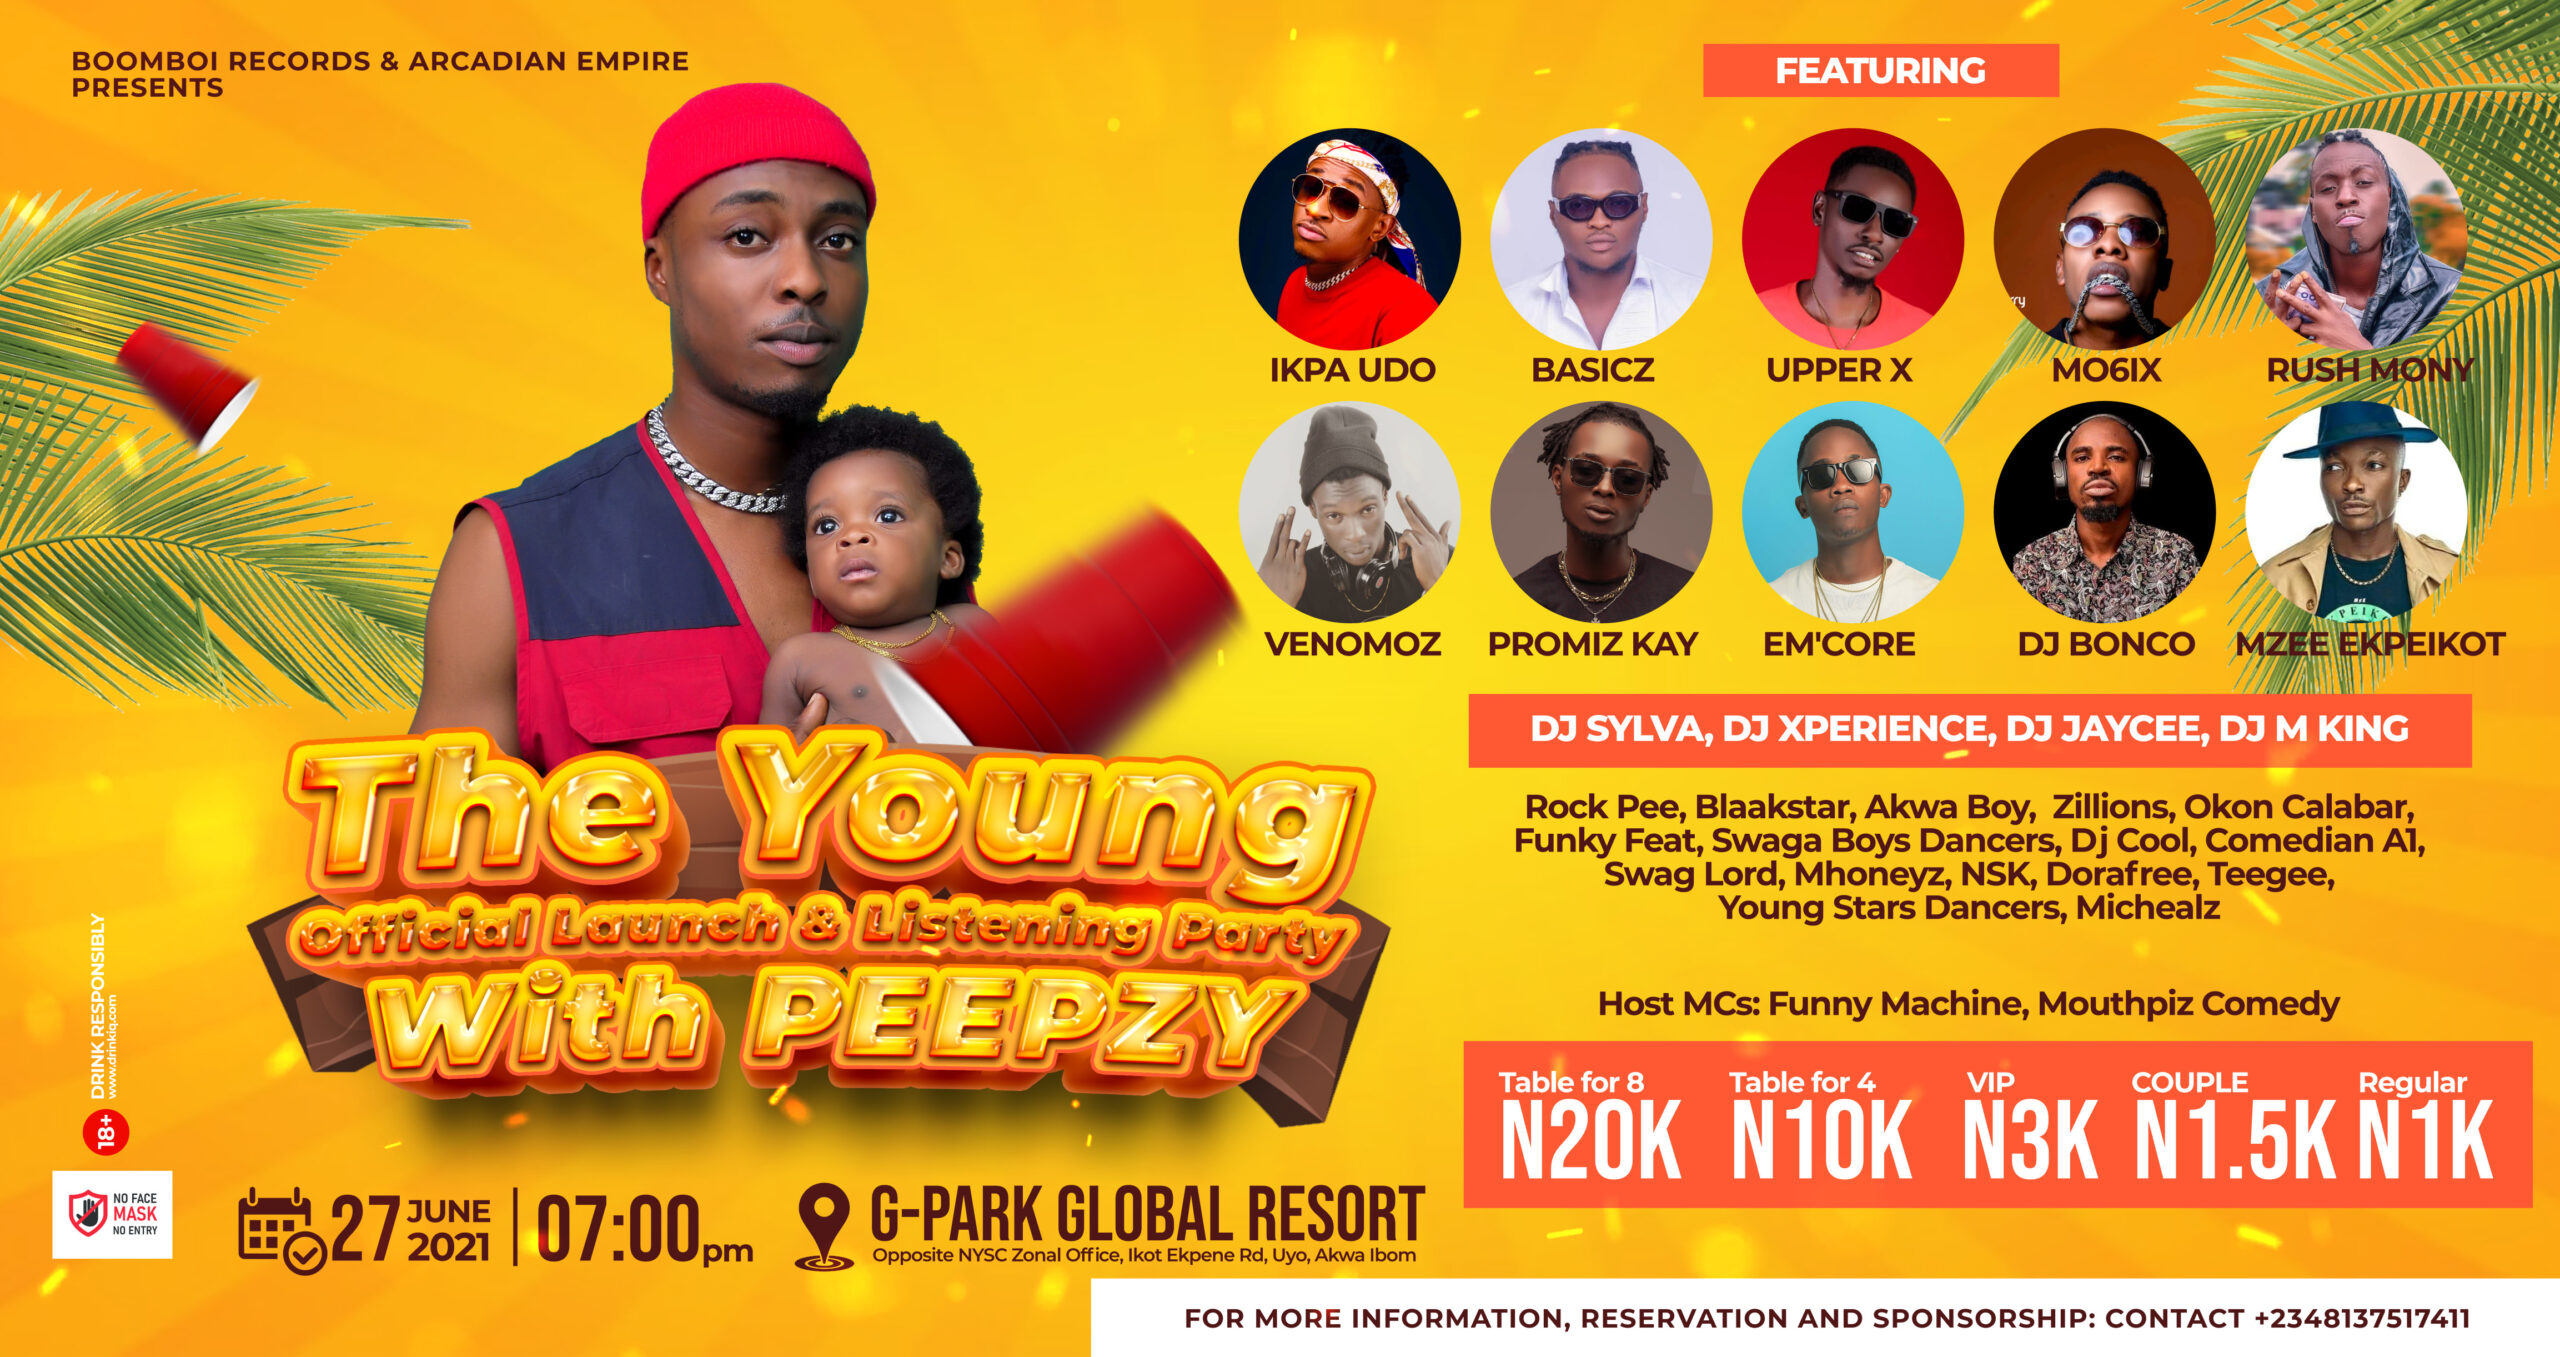 The Young Official Launch & Listening Party With Peepzy